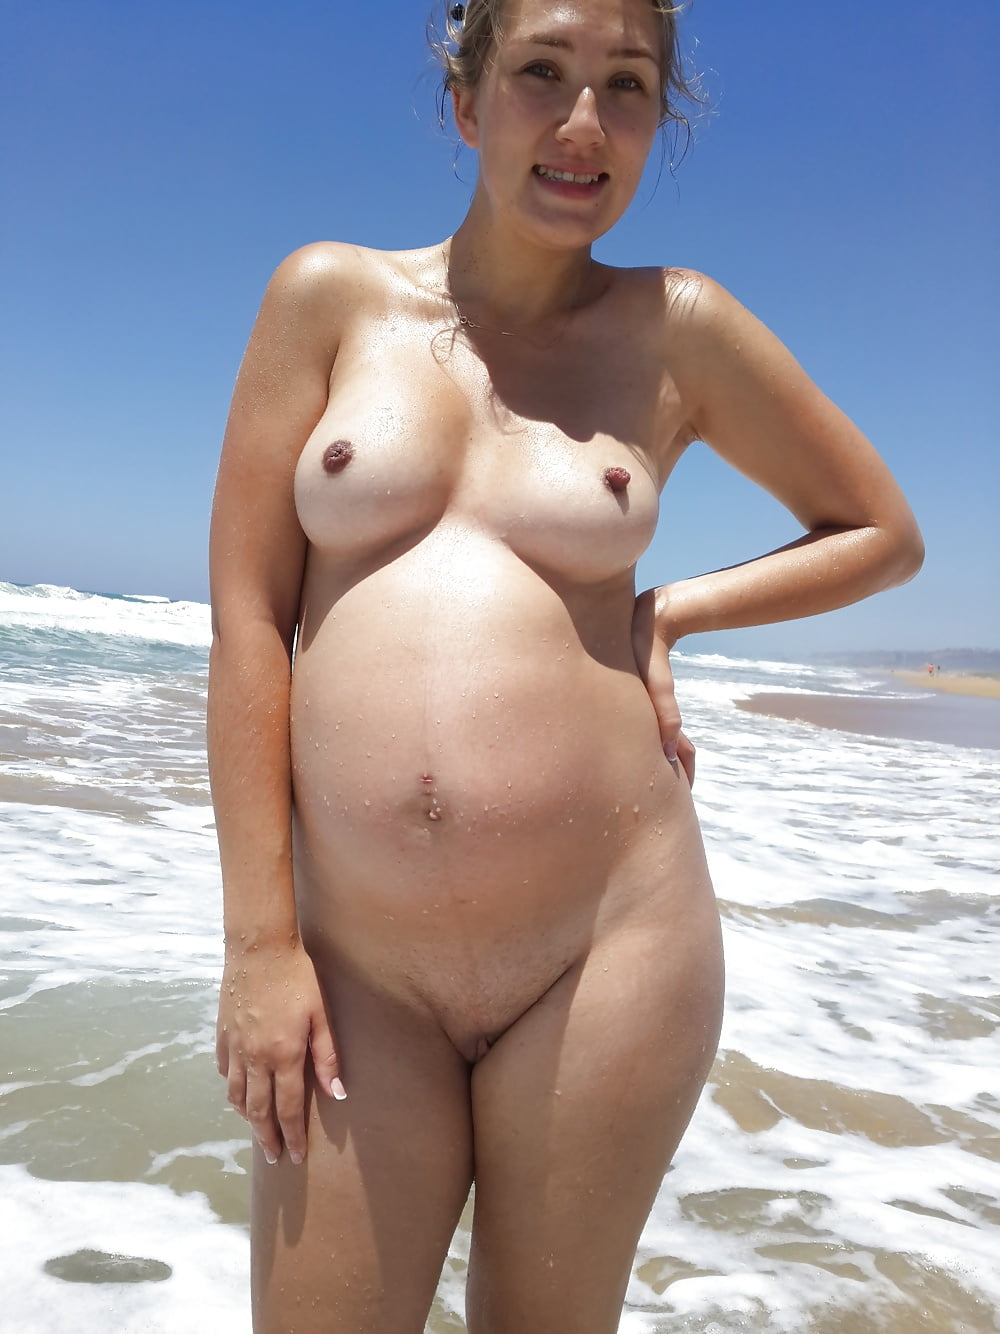 Pregnant Girls On The Nude Beach - 20 Fotos - Xhamstercom-4312